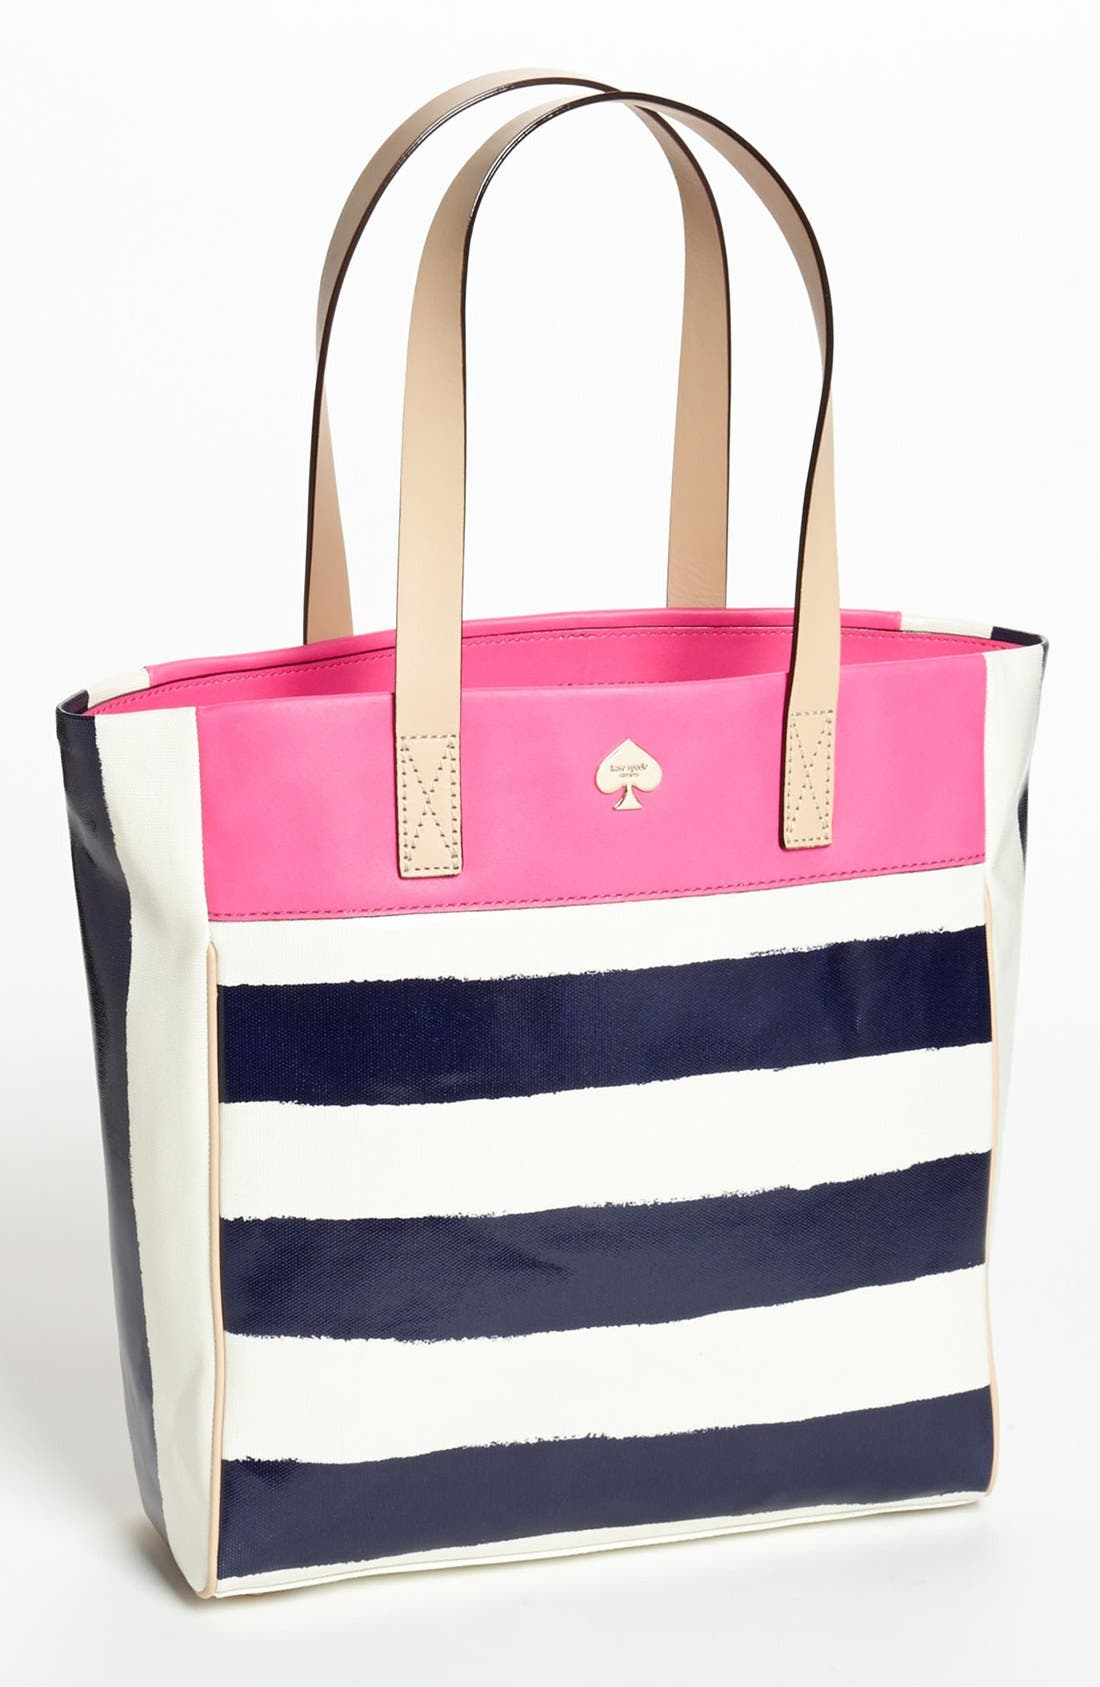 Main Image - kate spade new york 'pike place market - alicia' tote